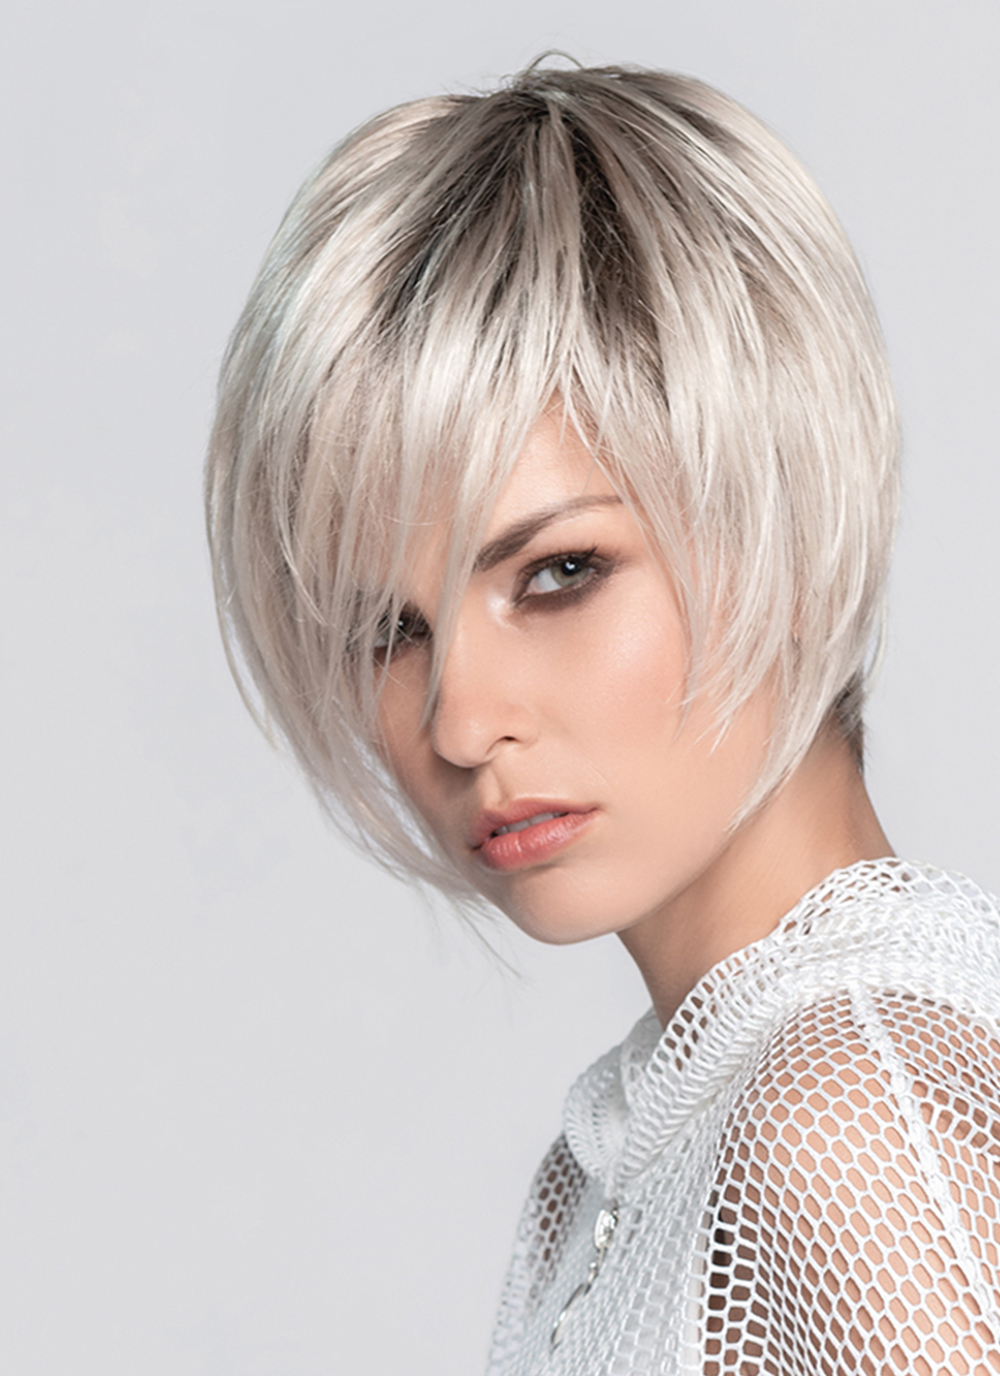 Java   The hand-knotted lace front gives an amazingly natural look for the off the face styling versatility.